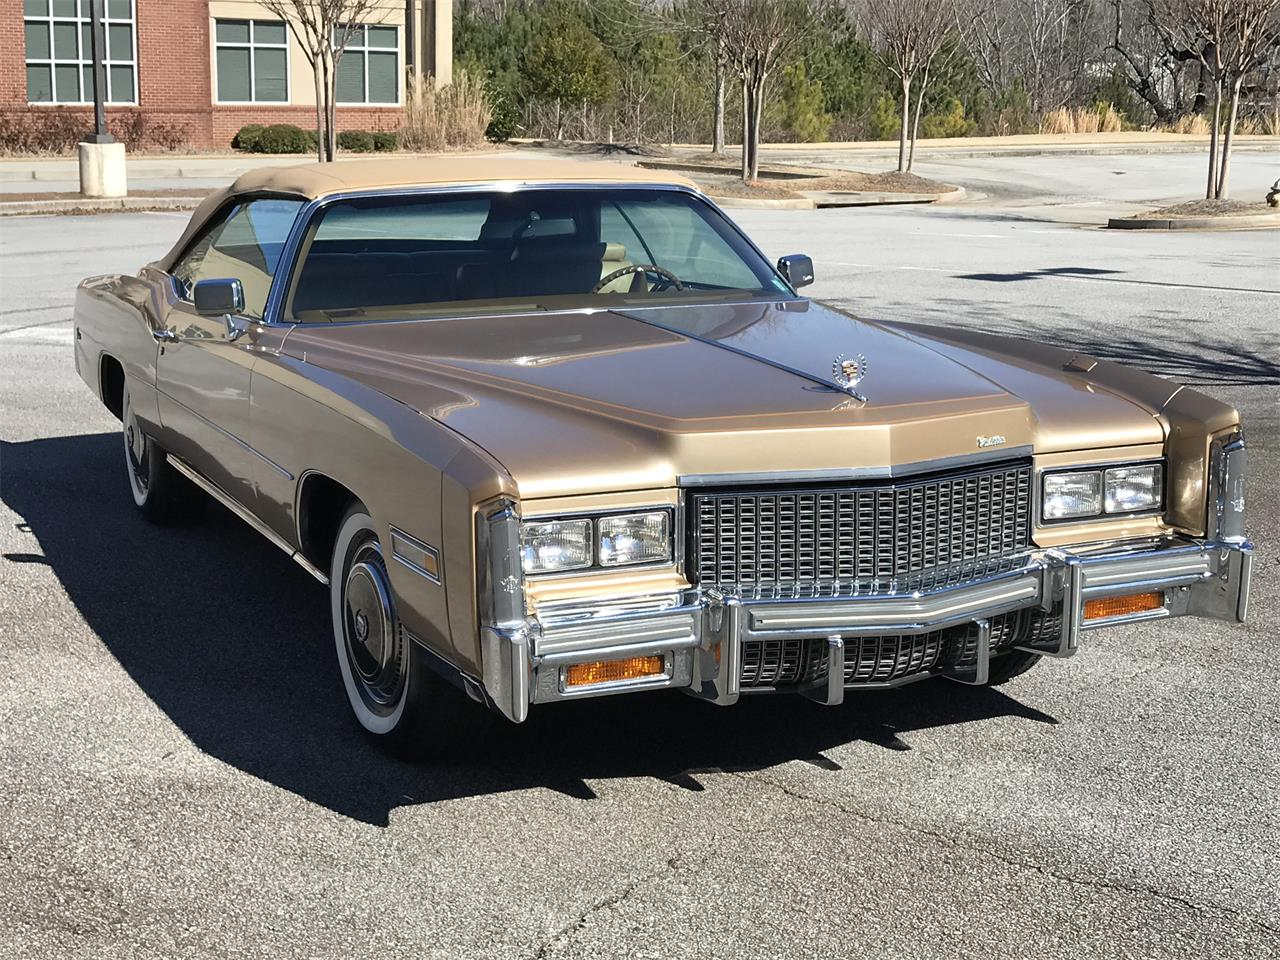 1976 Cadillac Eldorado (CC-1271840) for sale in Auburn, Georgia